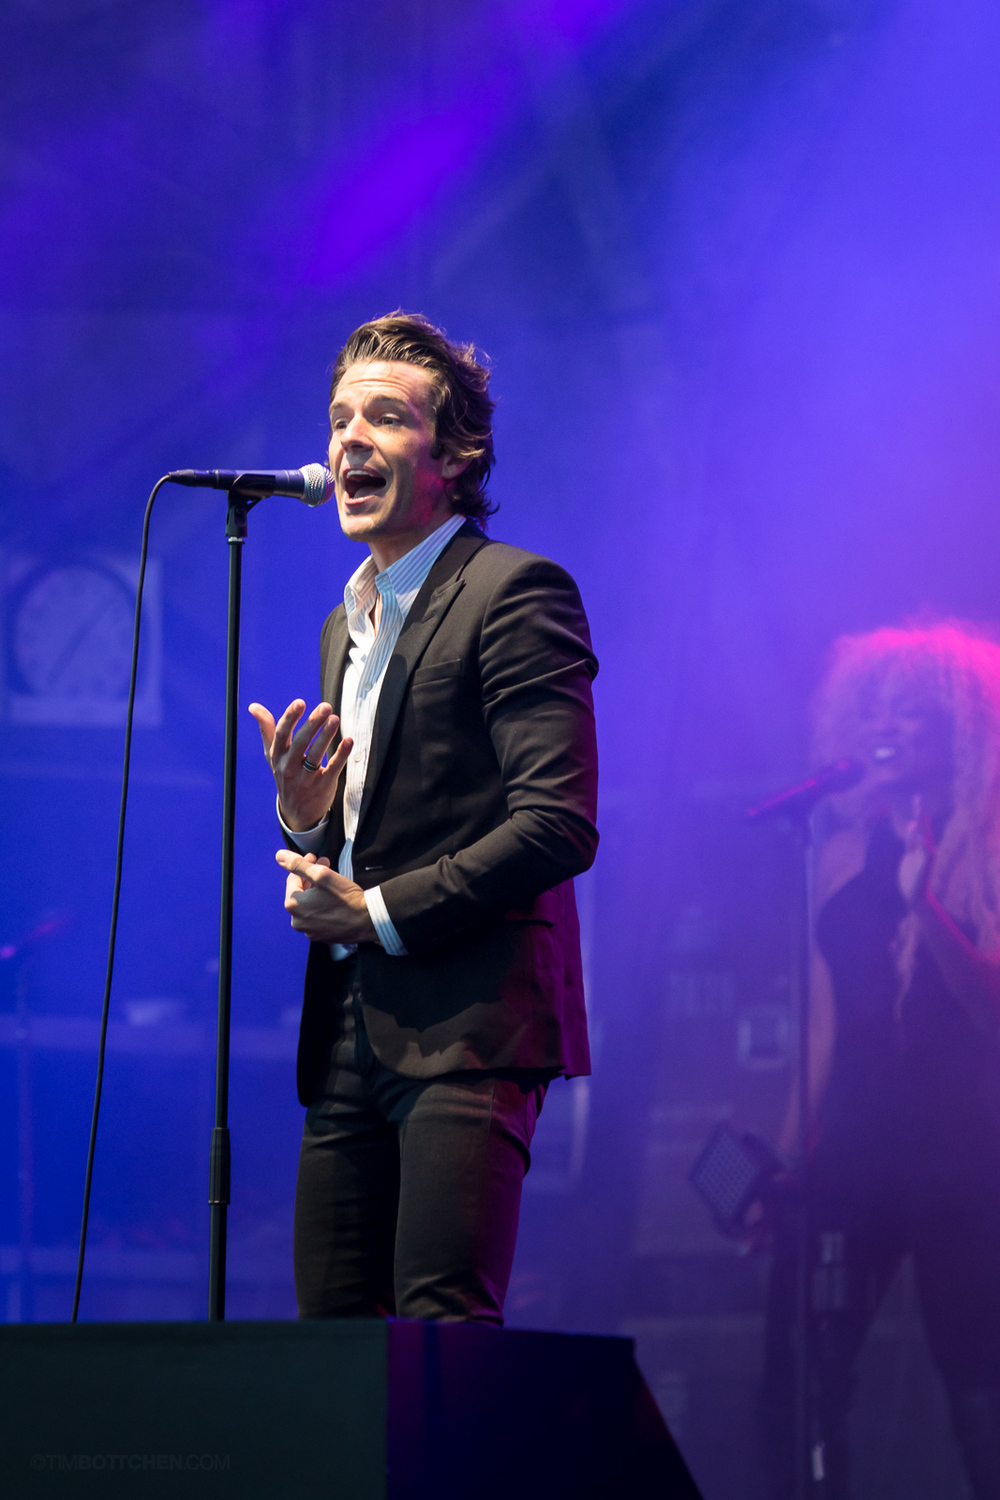 Brandon Flowers at LouFest